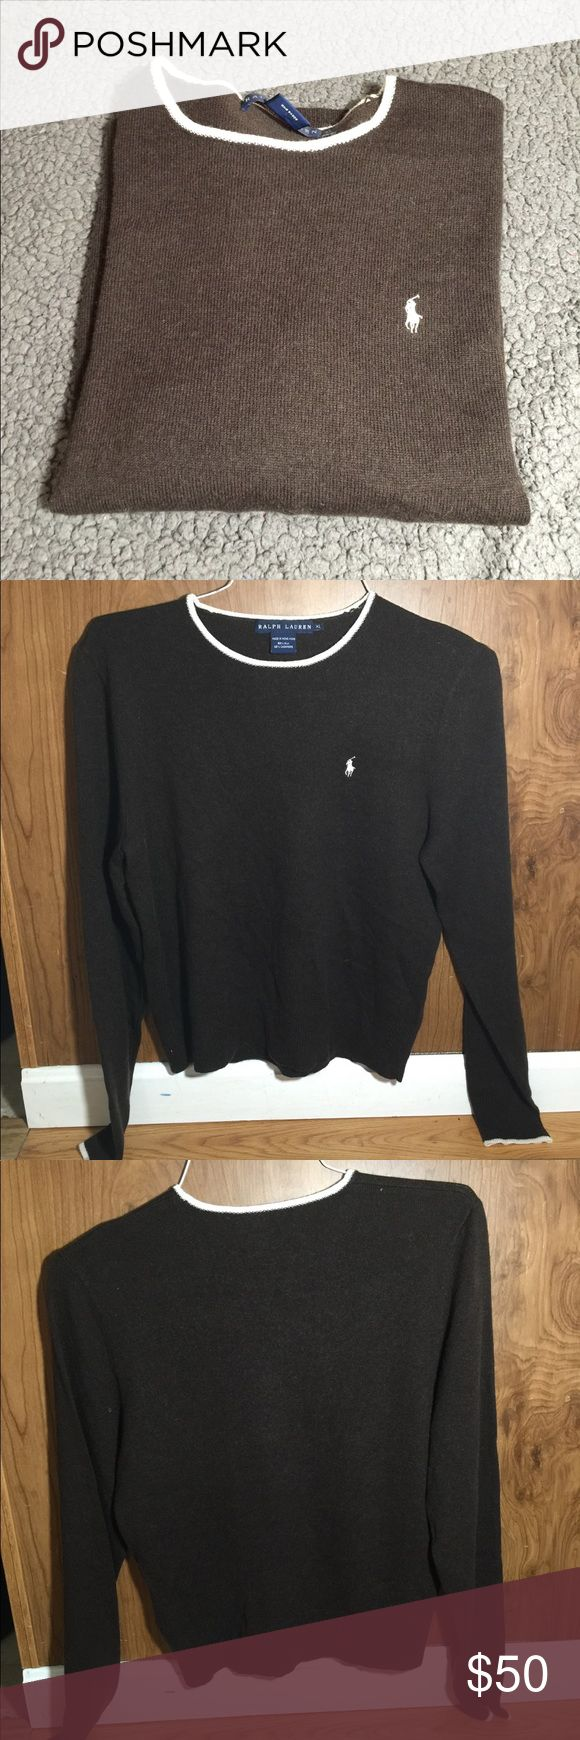 Polo Ralph Lauren Crewneck Sweater Excellent Used Condition  Polo Ralph Lauren  Women's Crewneck sweater  58% silk 42% Cashmere  Size: XL Color: brown with cream around the collar and cuffs and cream pony From a smoke free and pet free home No holes or stains Ralph Lauren Sweaters Crew & Scoop Necks